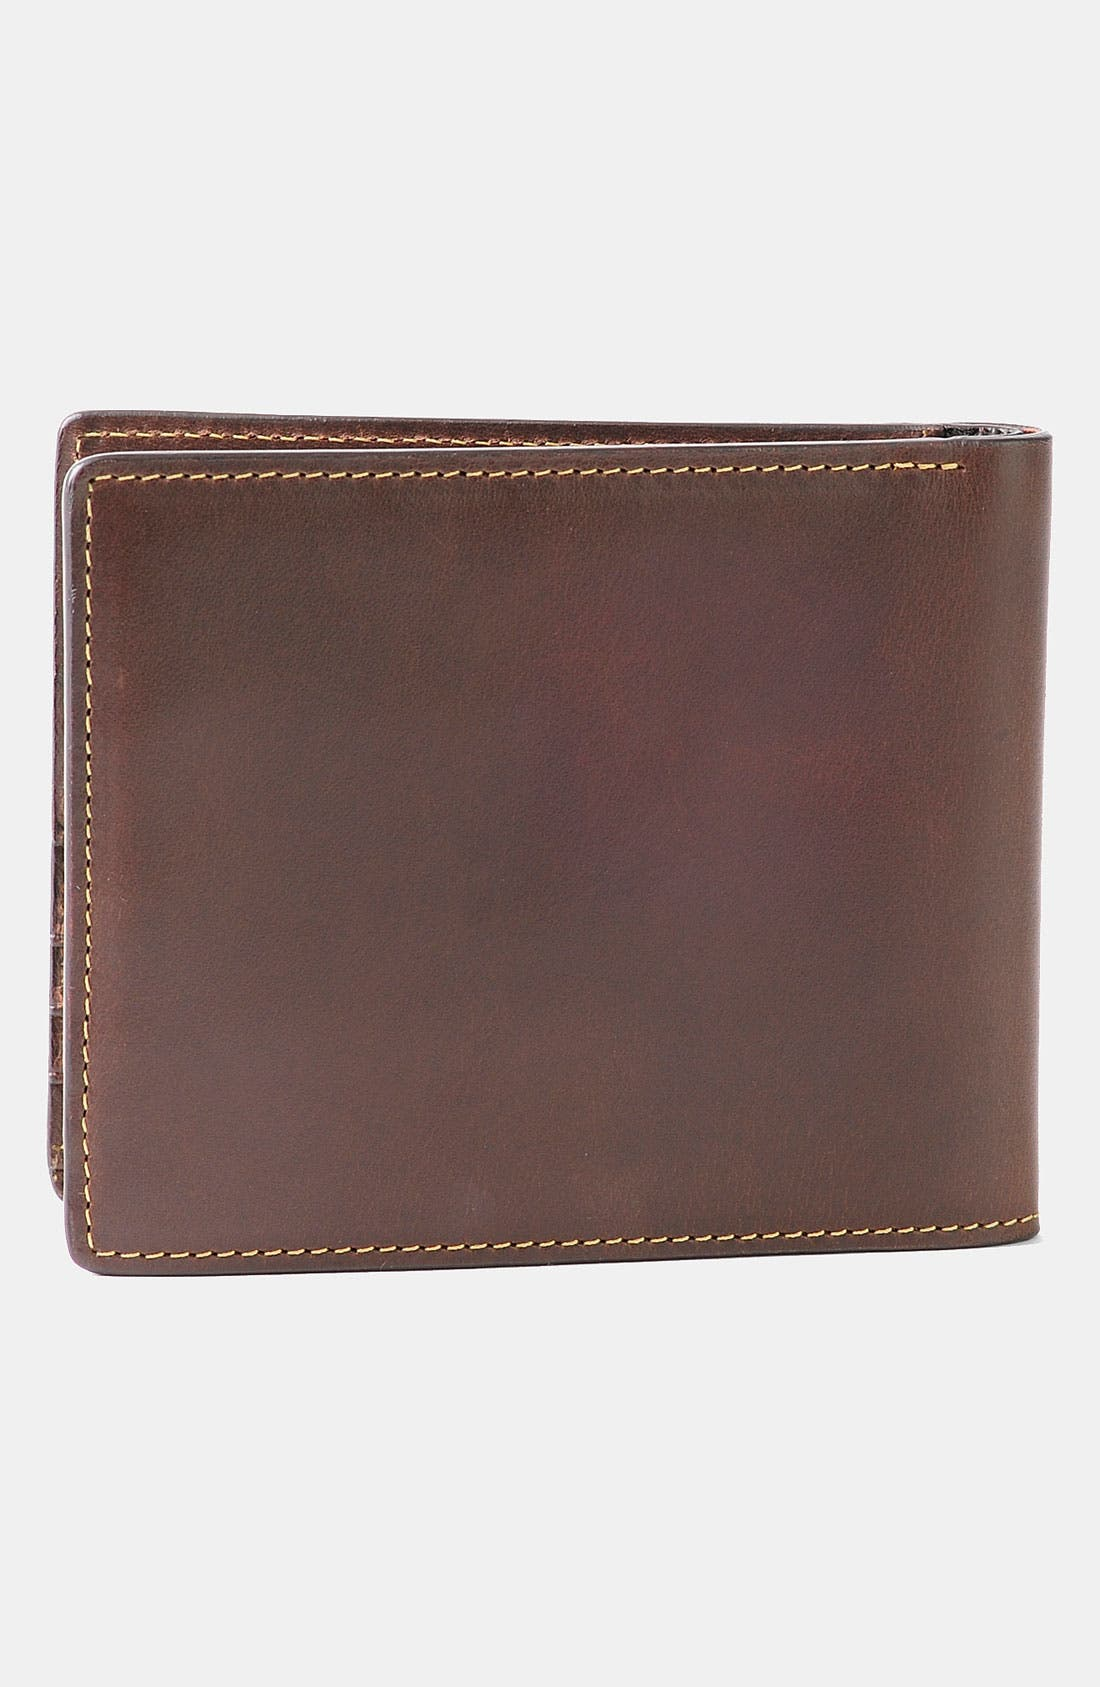 'Bryant' RFID Blocker Slimfold Wallet,                             Alternate thumbnail 4, color,                             ANTIQUE MAHOGANY